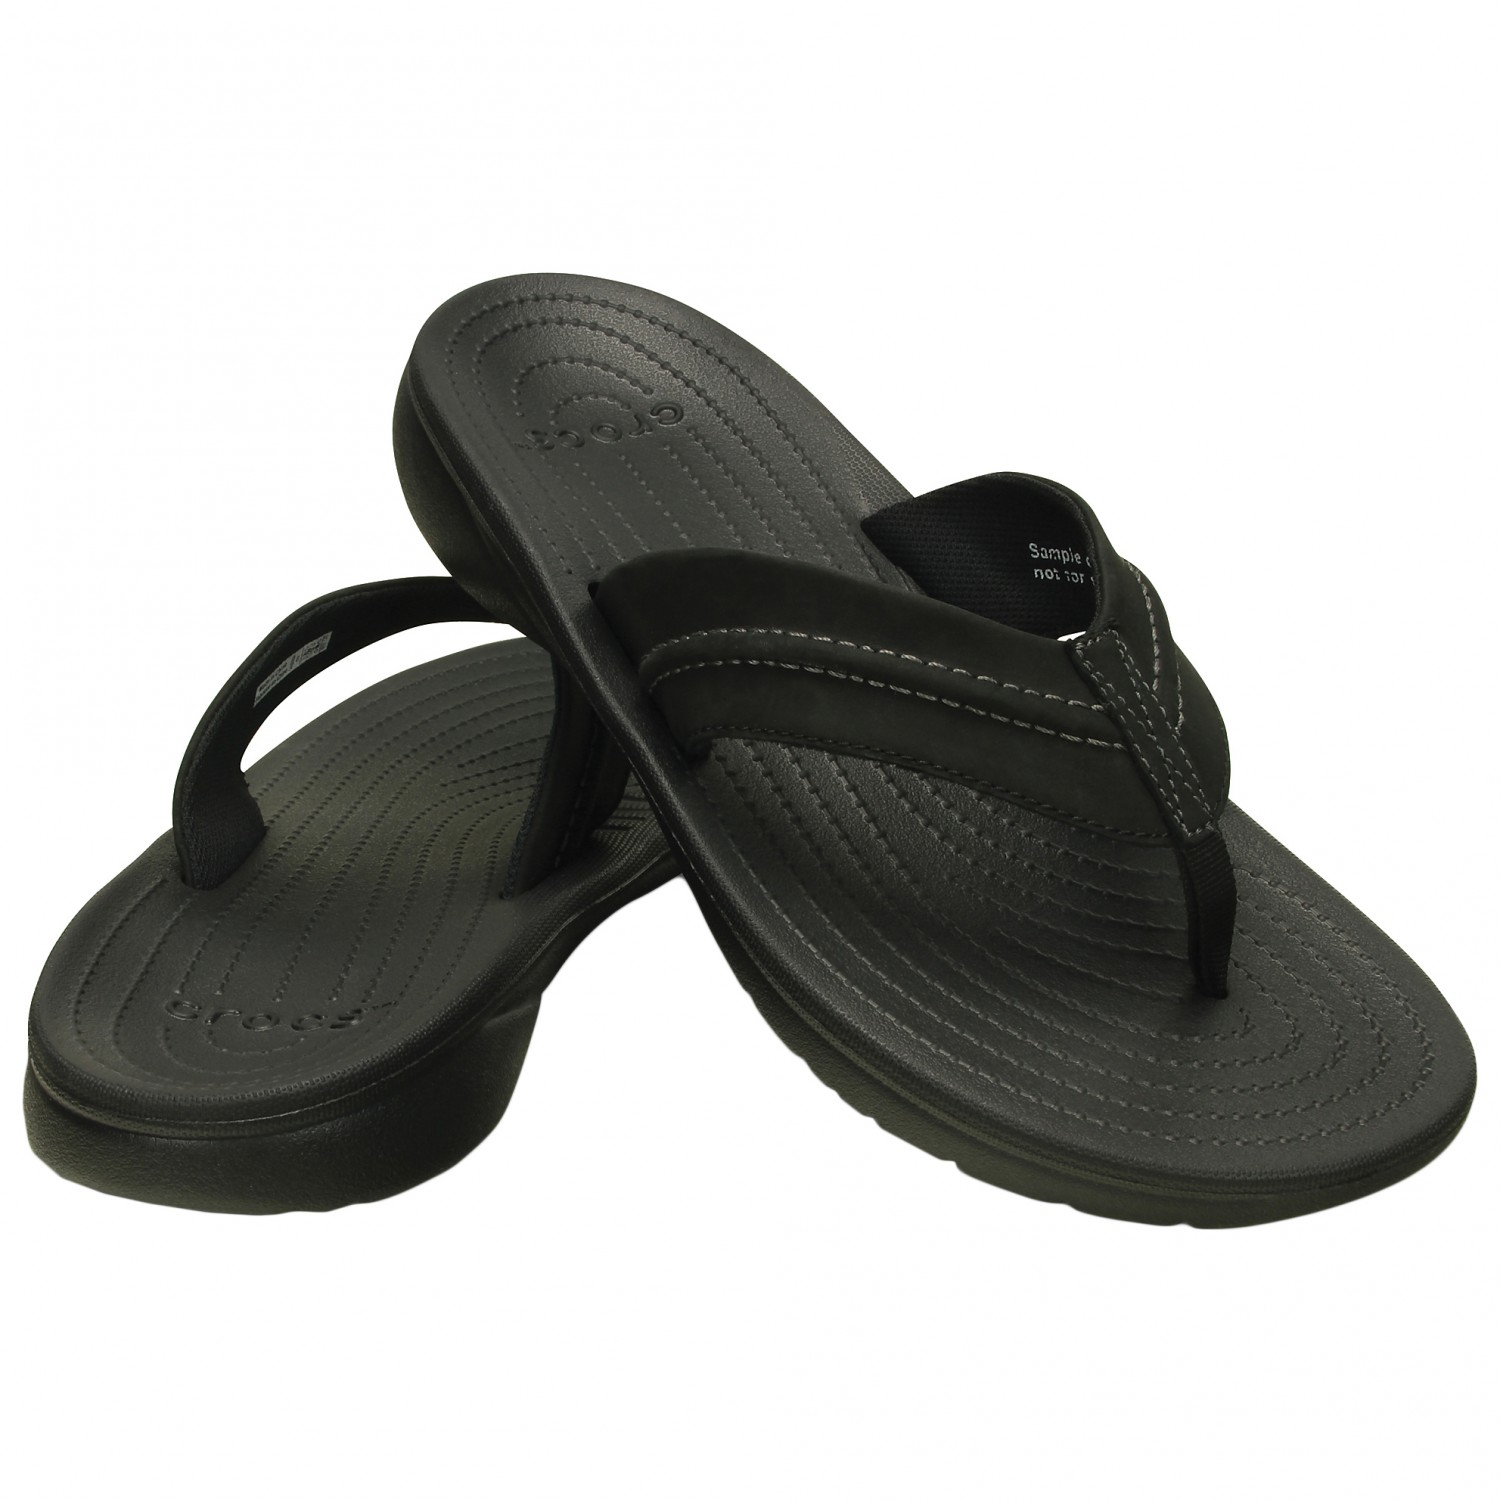 official photos d38fc 1773a Crocs - Yukon Mesa Flip - Outdoorsandalen - Sandalen